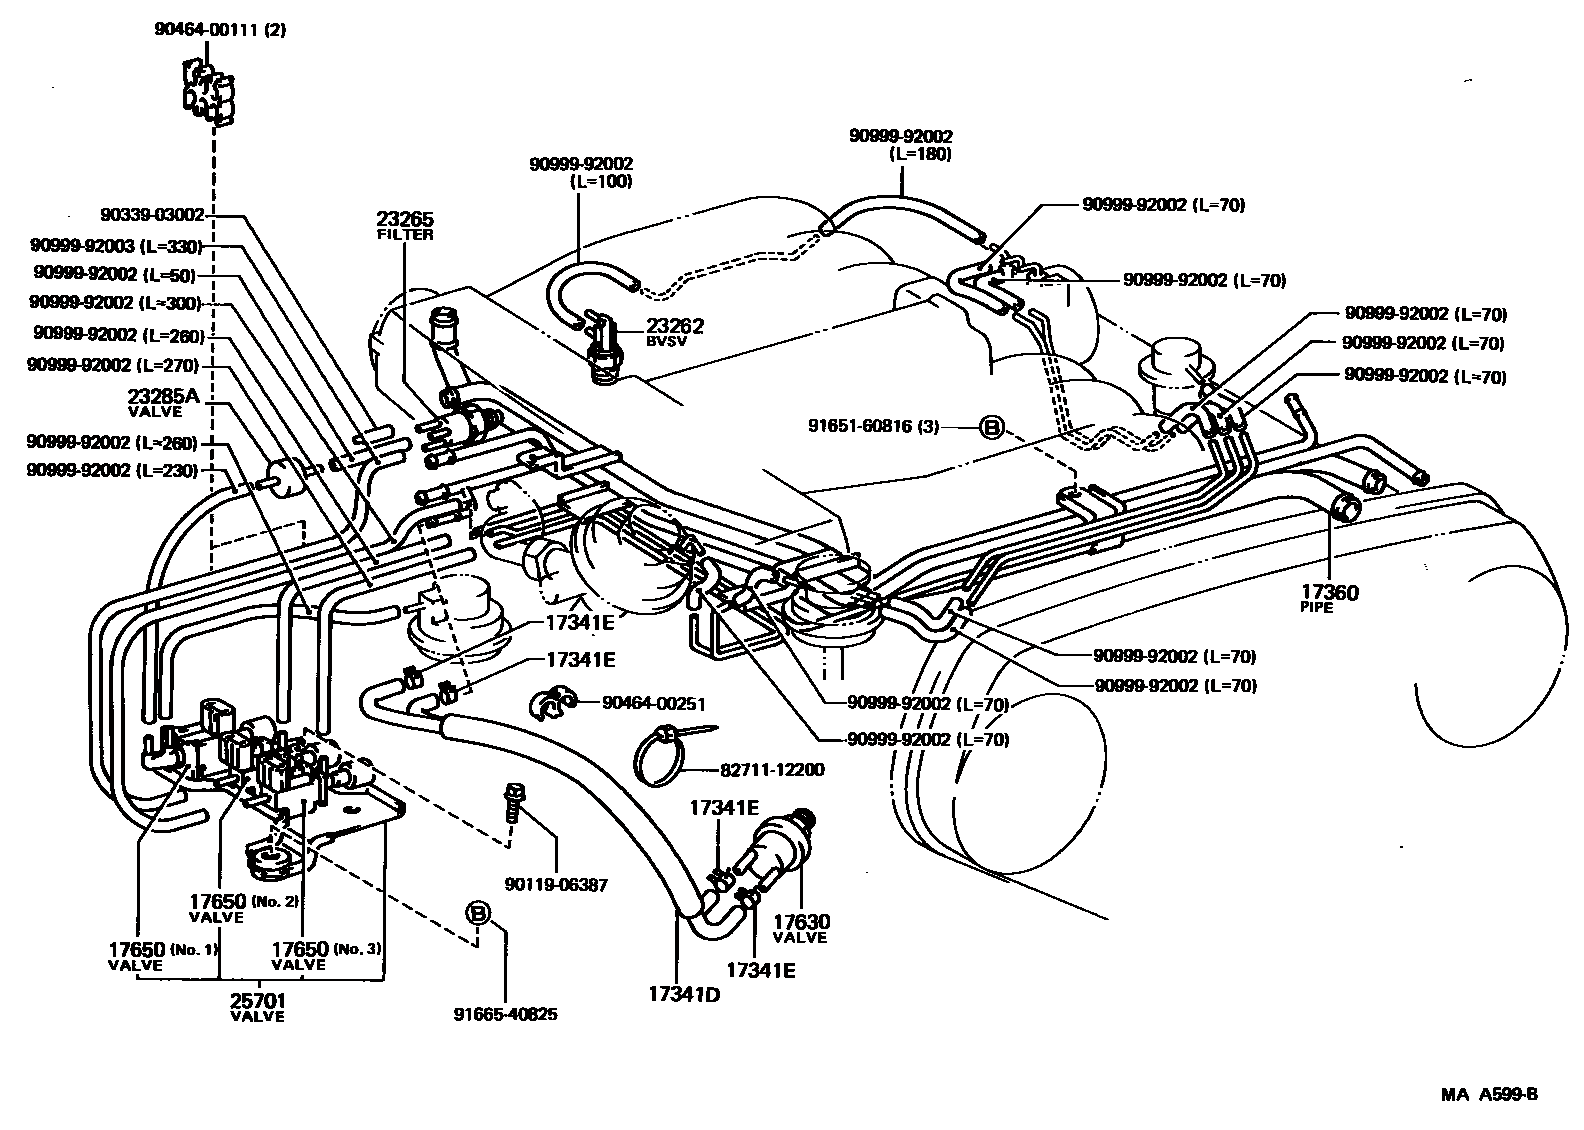 1993 Toyotum Pickup Engine Diagram